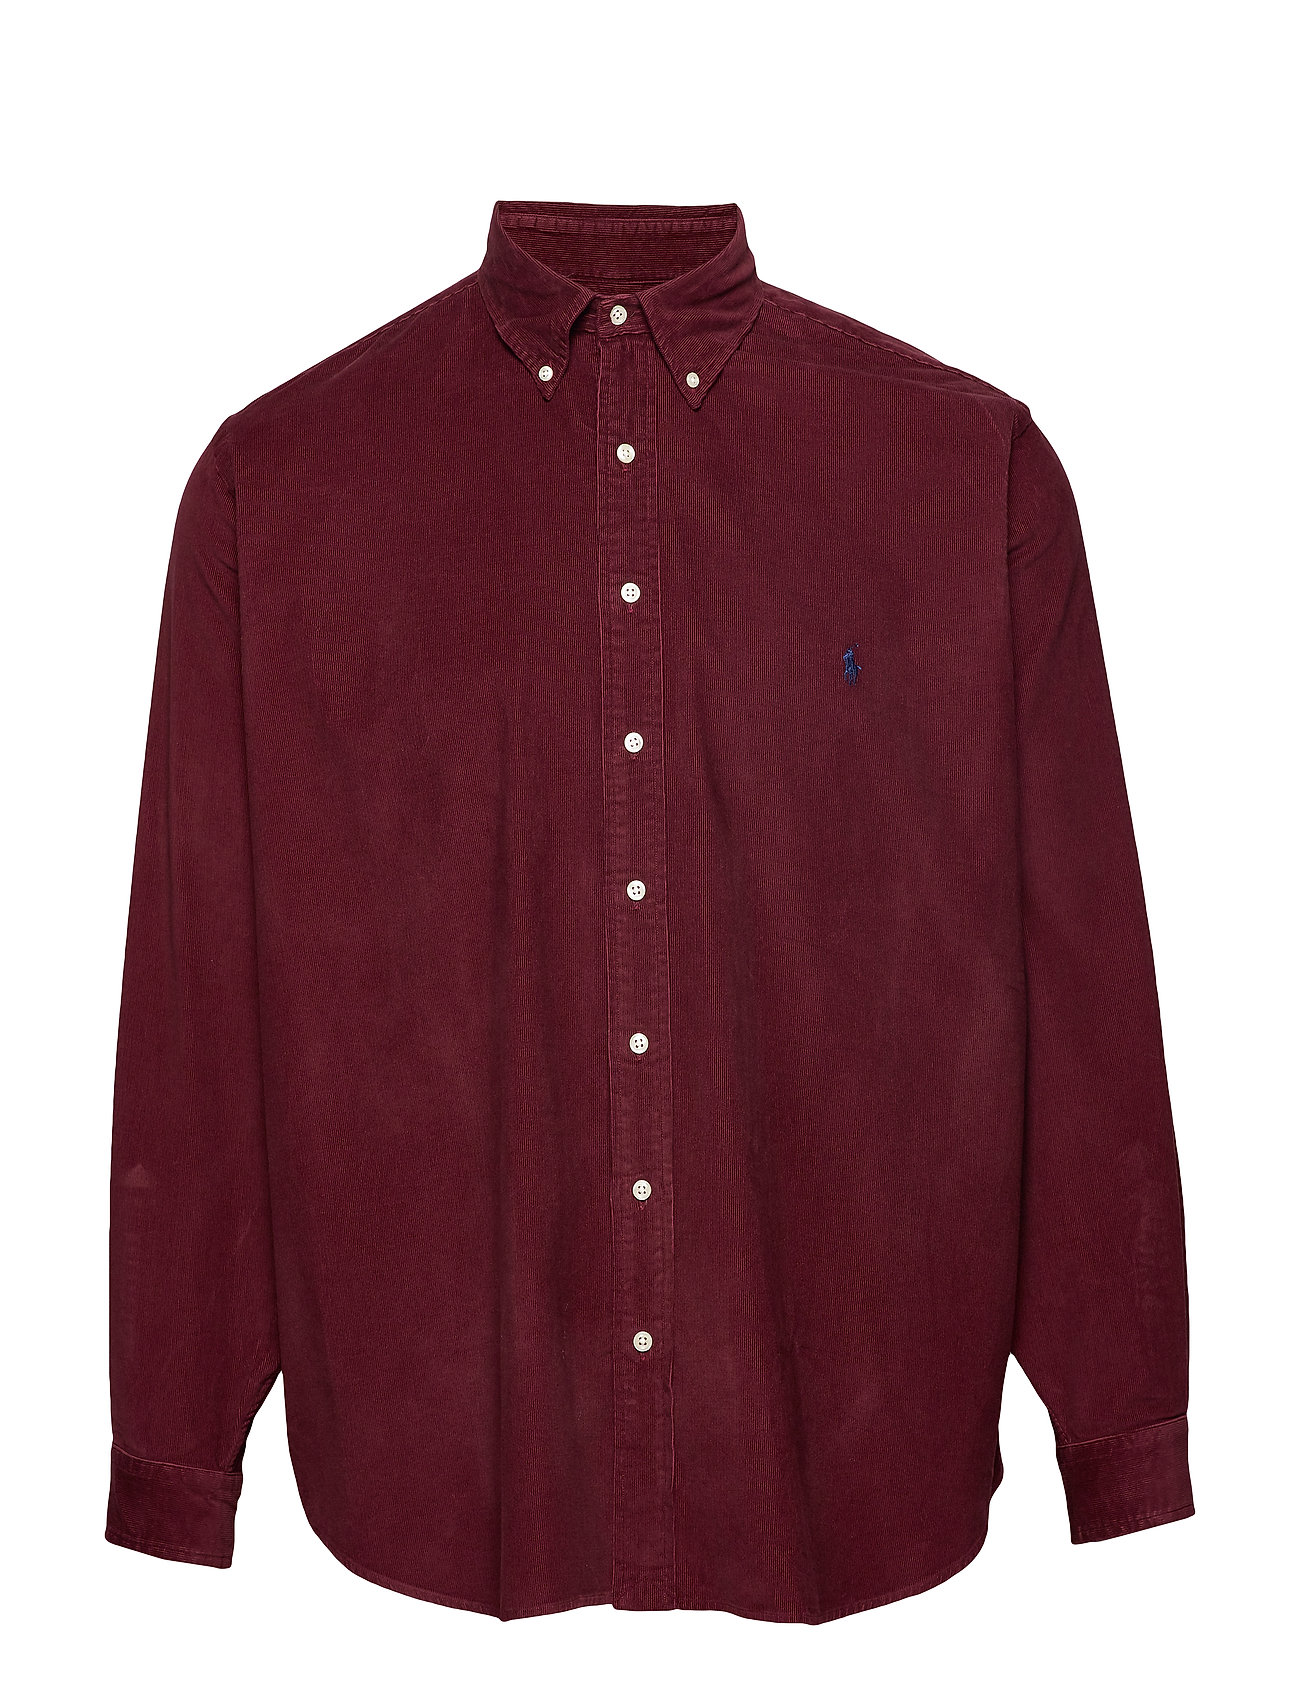 Polo Ralph Lauren Big & Tall Classic Fit Corduroy Shirt - CLASSIC WINE